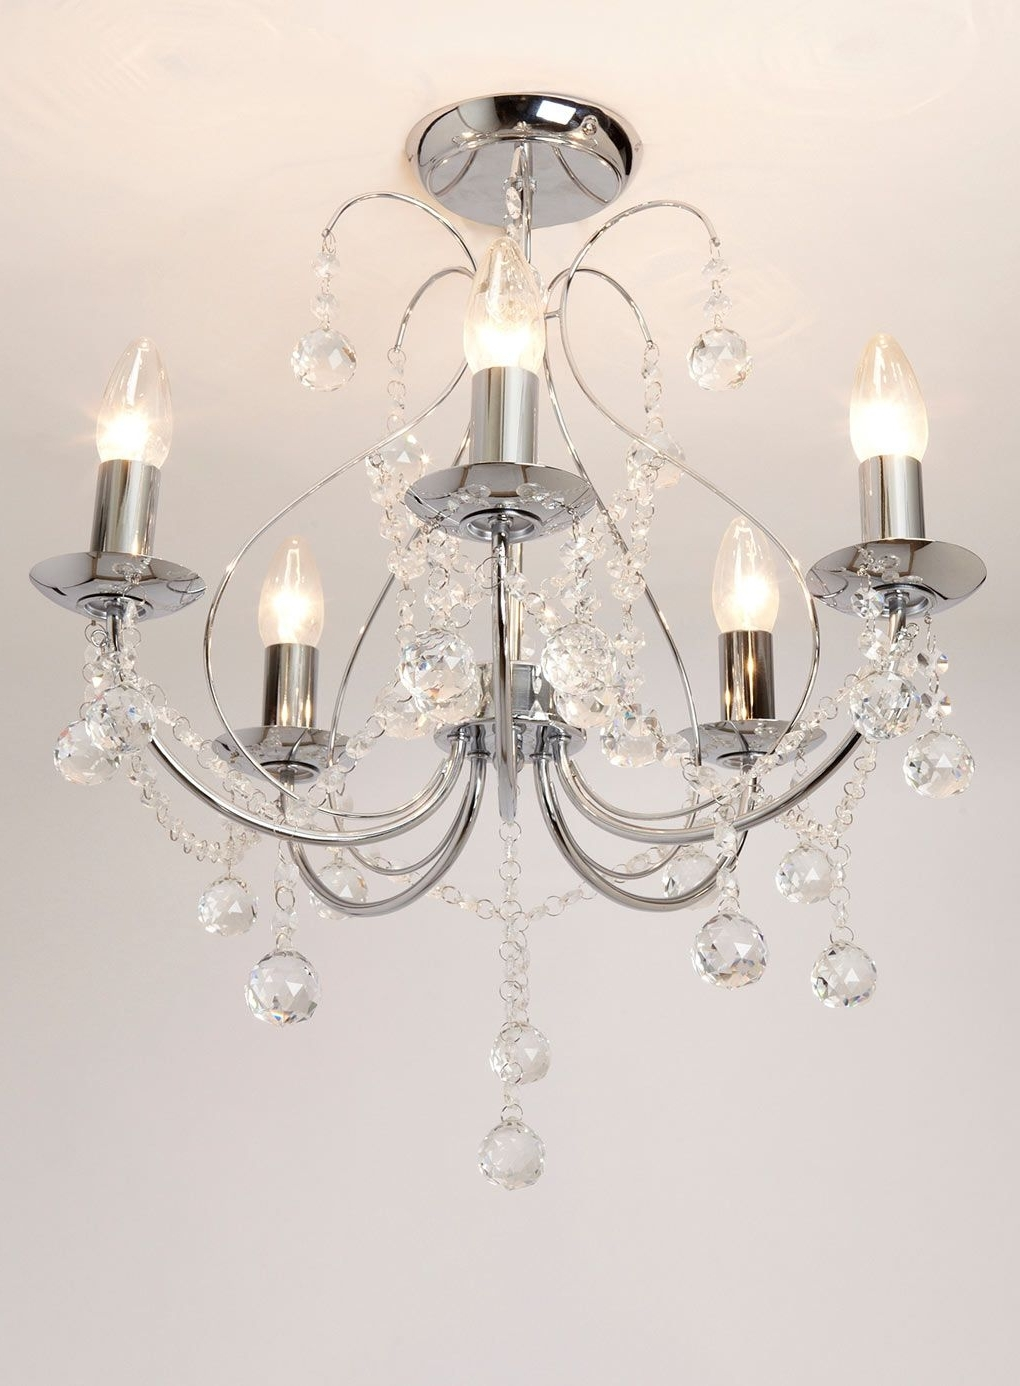 Flush Chandelier With Regard To Famous Living Room Light. (View 20 of 20)